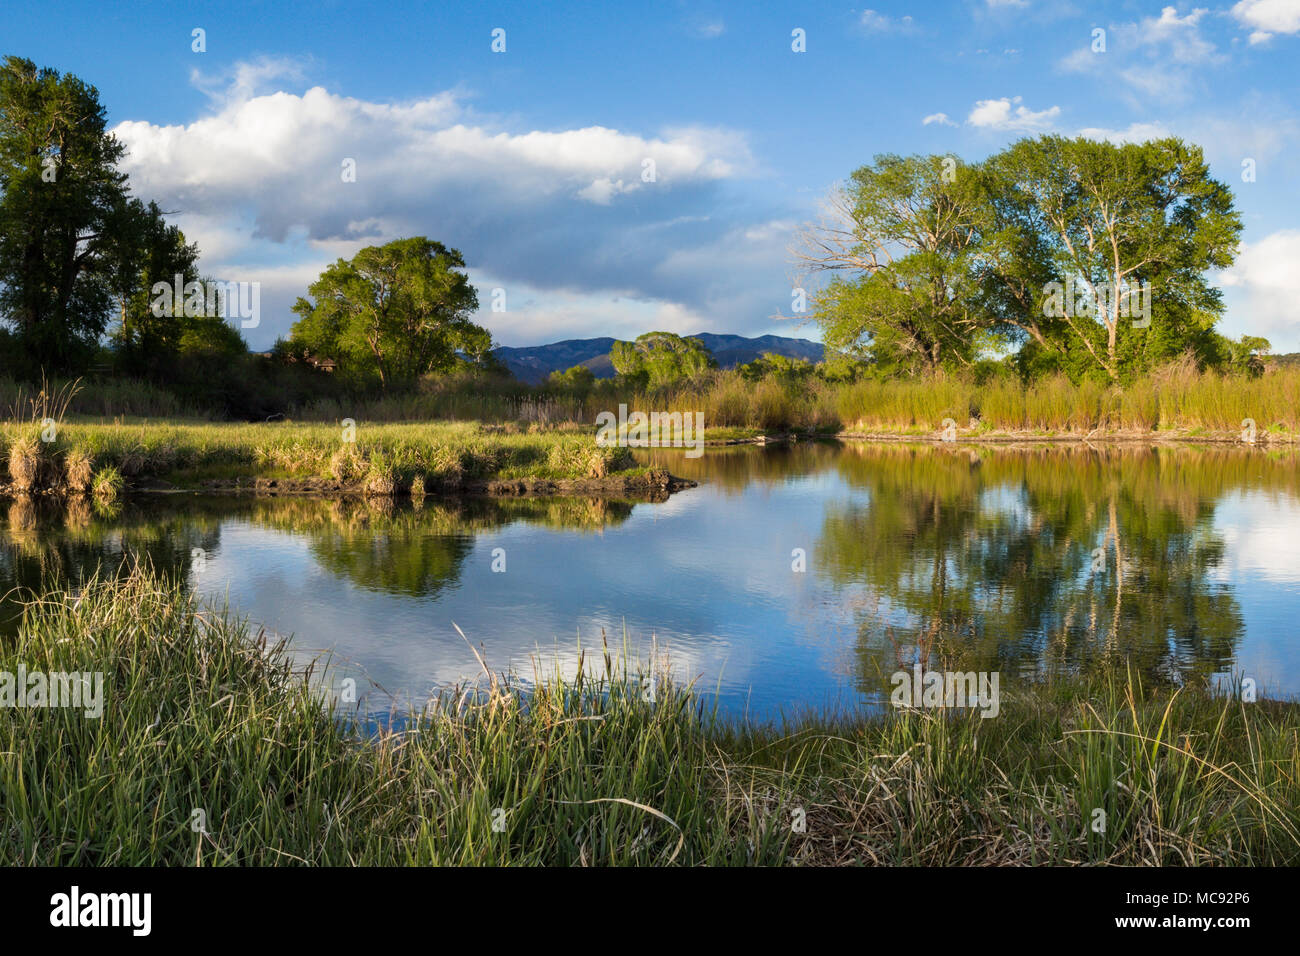 A peaceful beaver pond reflects the serene landscape in central Colorado - Stock Image